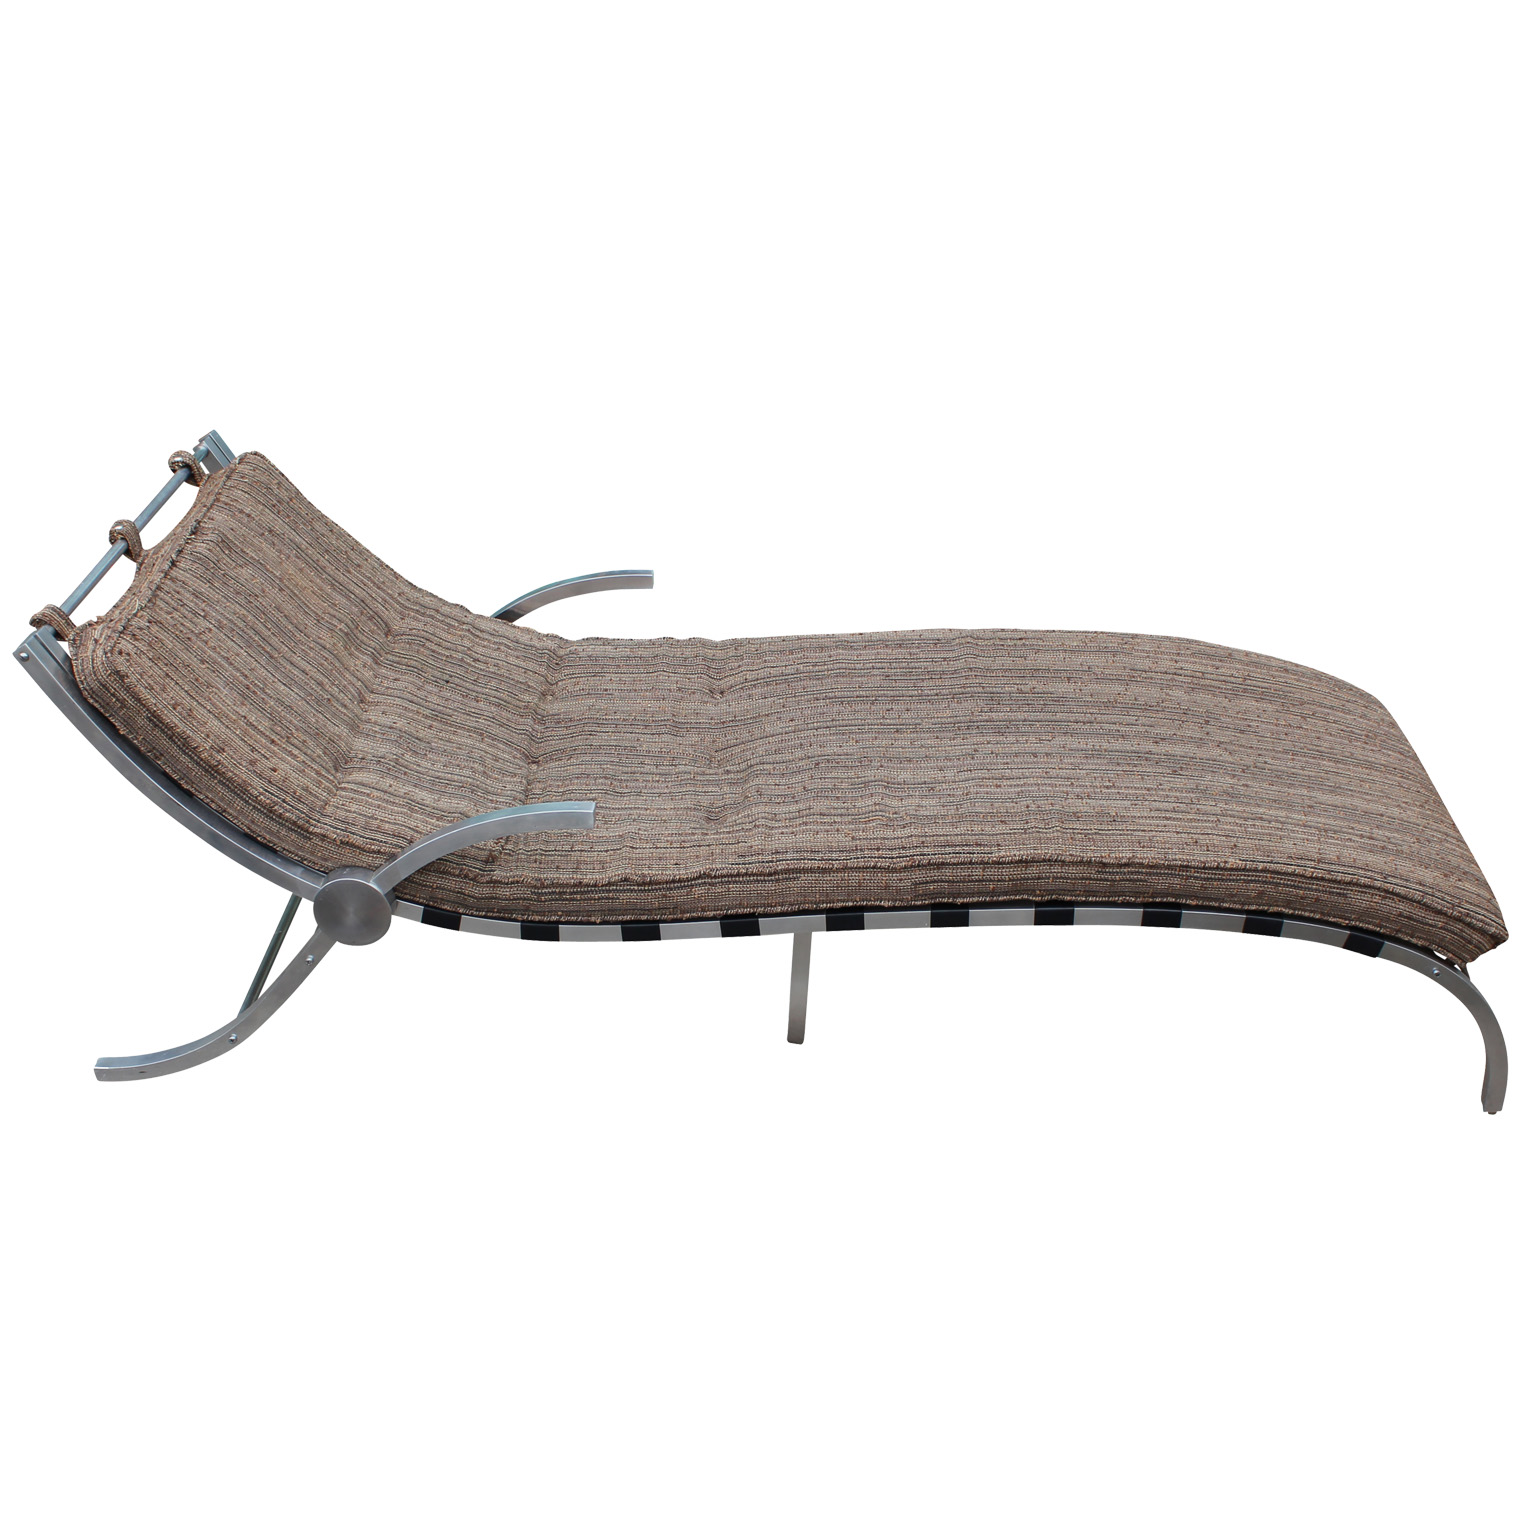 Sculptural Aluminum Chaise Lounge